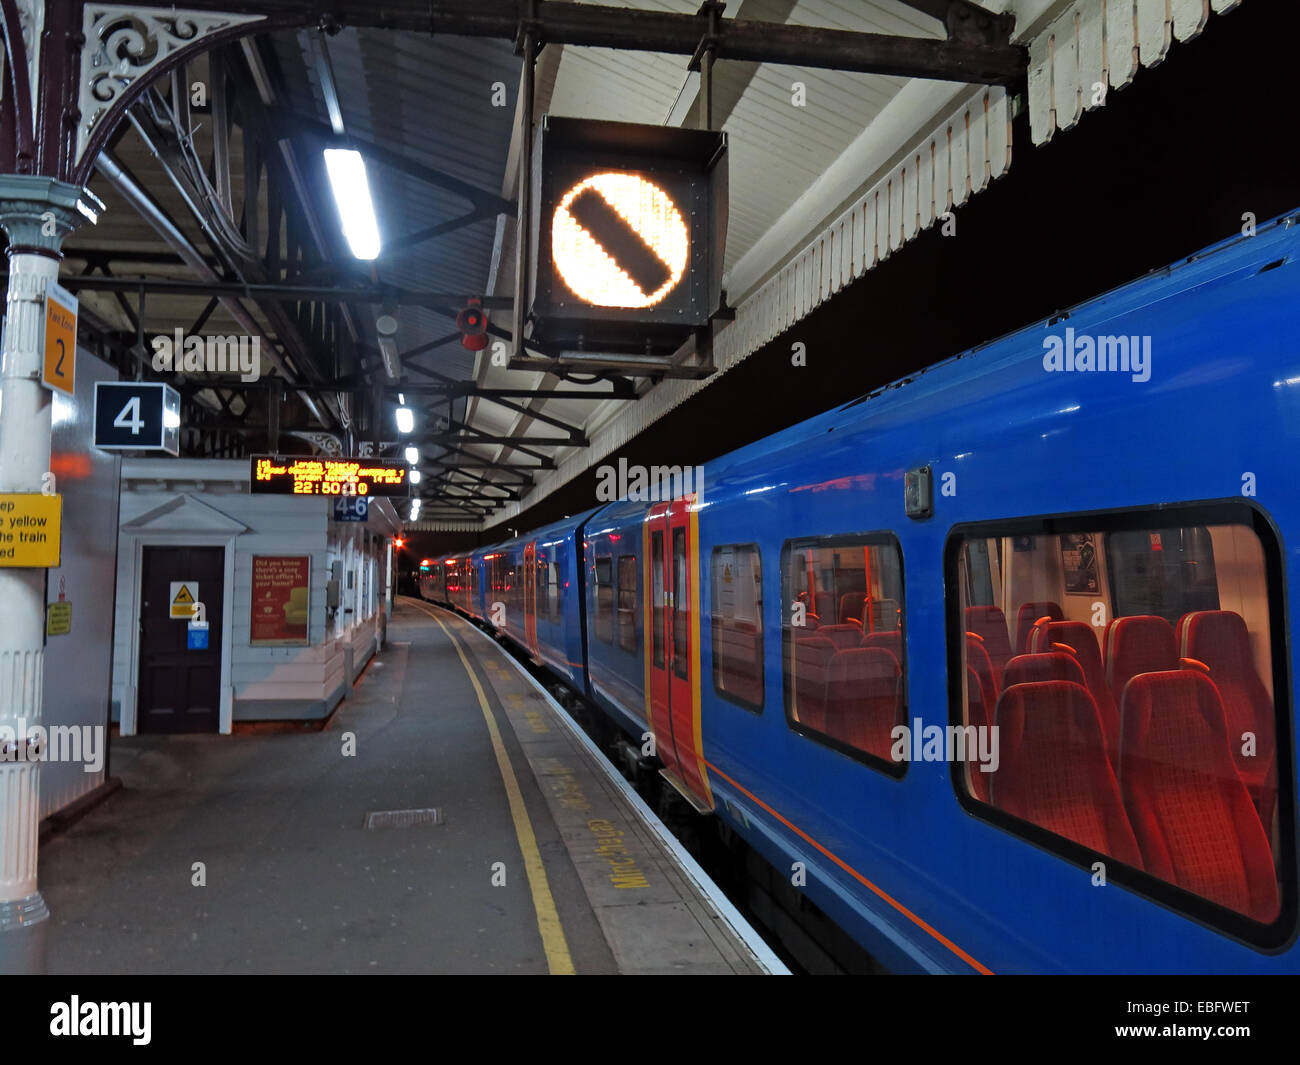 at night,on,platform,4,London,city,train,suburban,empty,lonely,clean,not,so,busy,busiest,ready,to,go,Gotonysmith